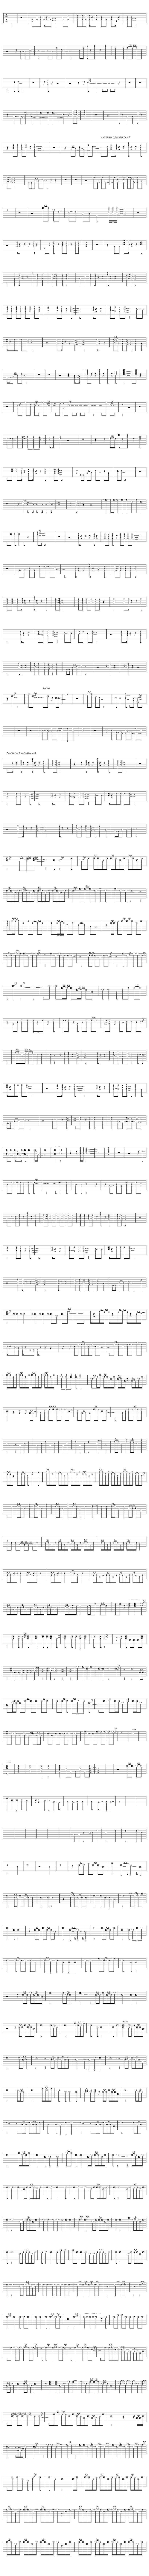 Sultans of Swing Tab